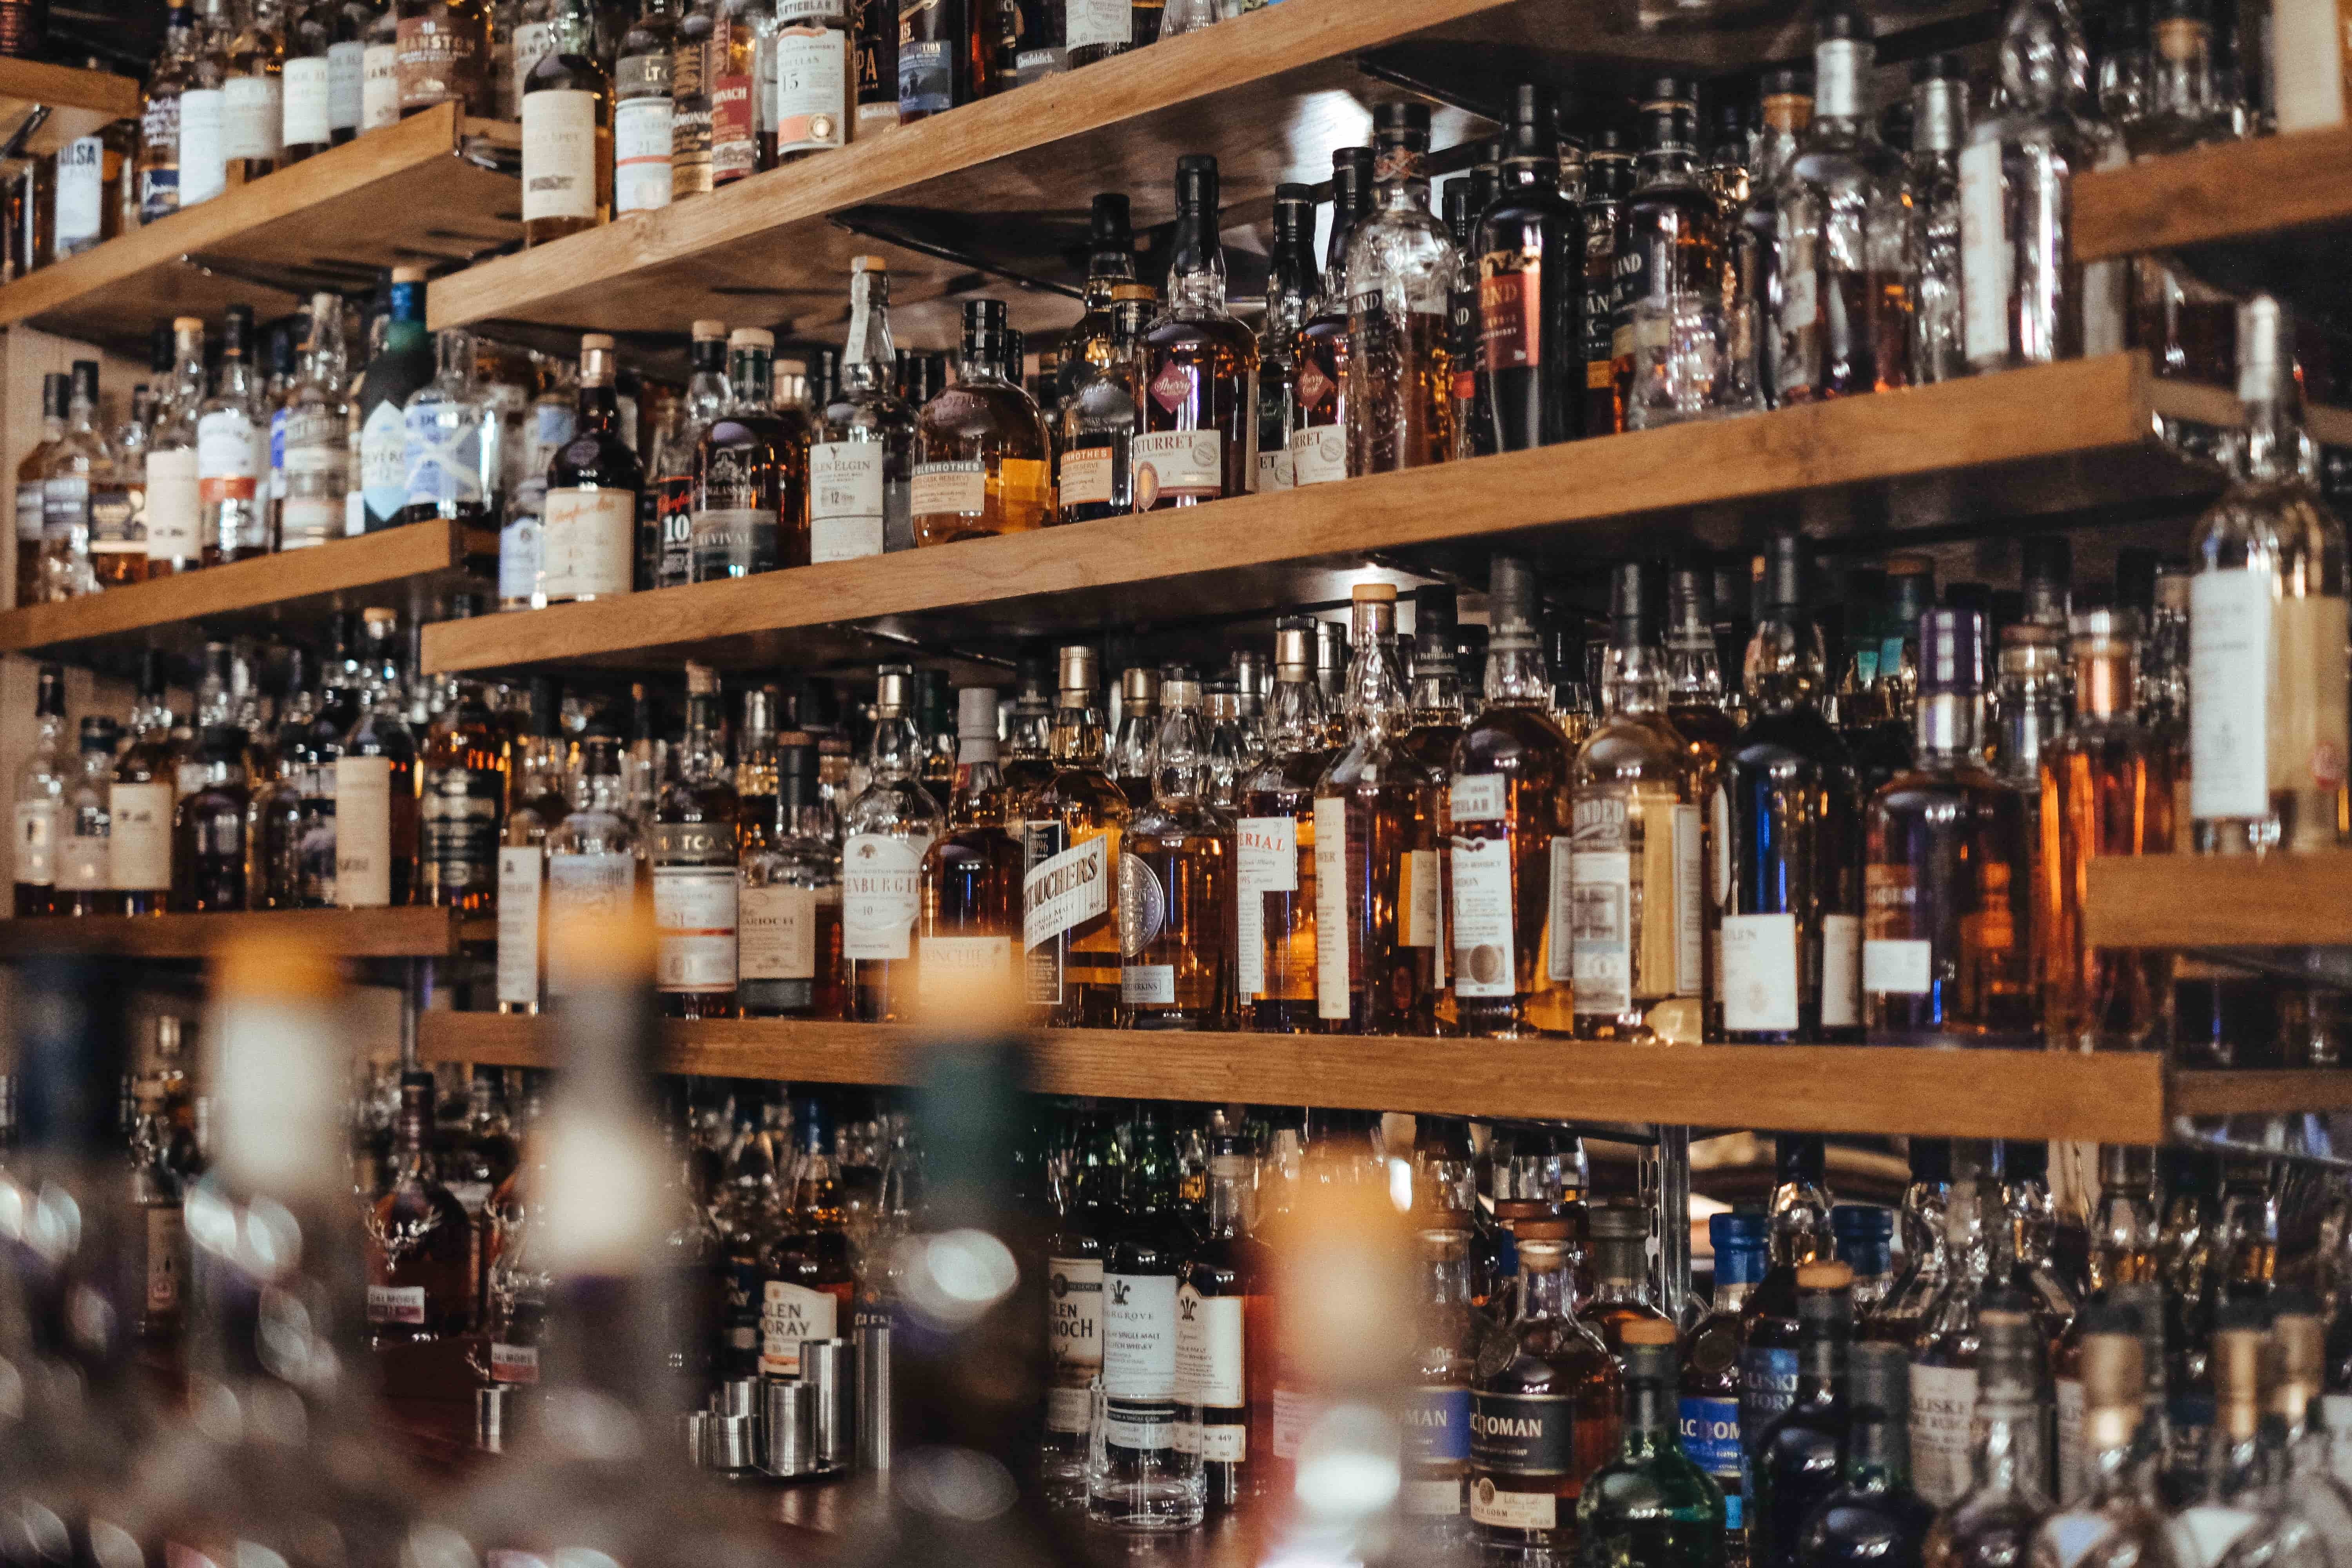 A lot of liquor bottles lined up on a bar